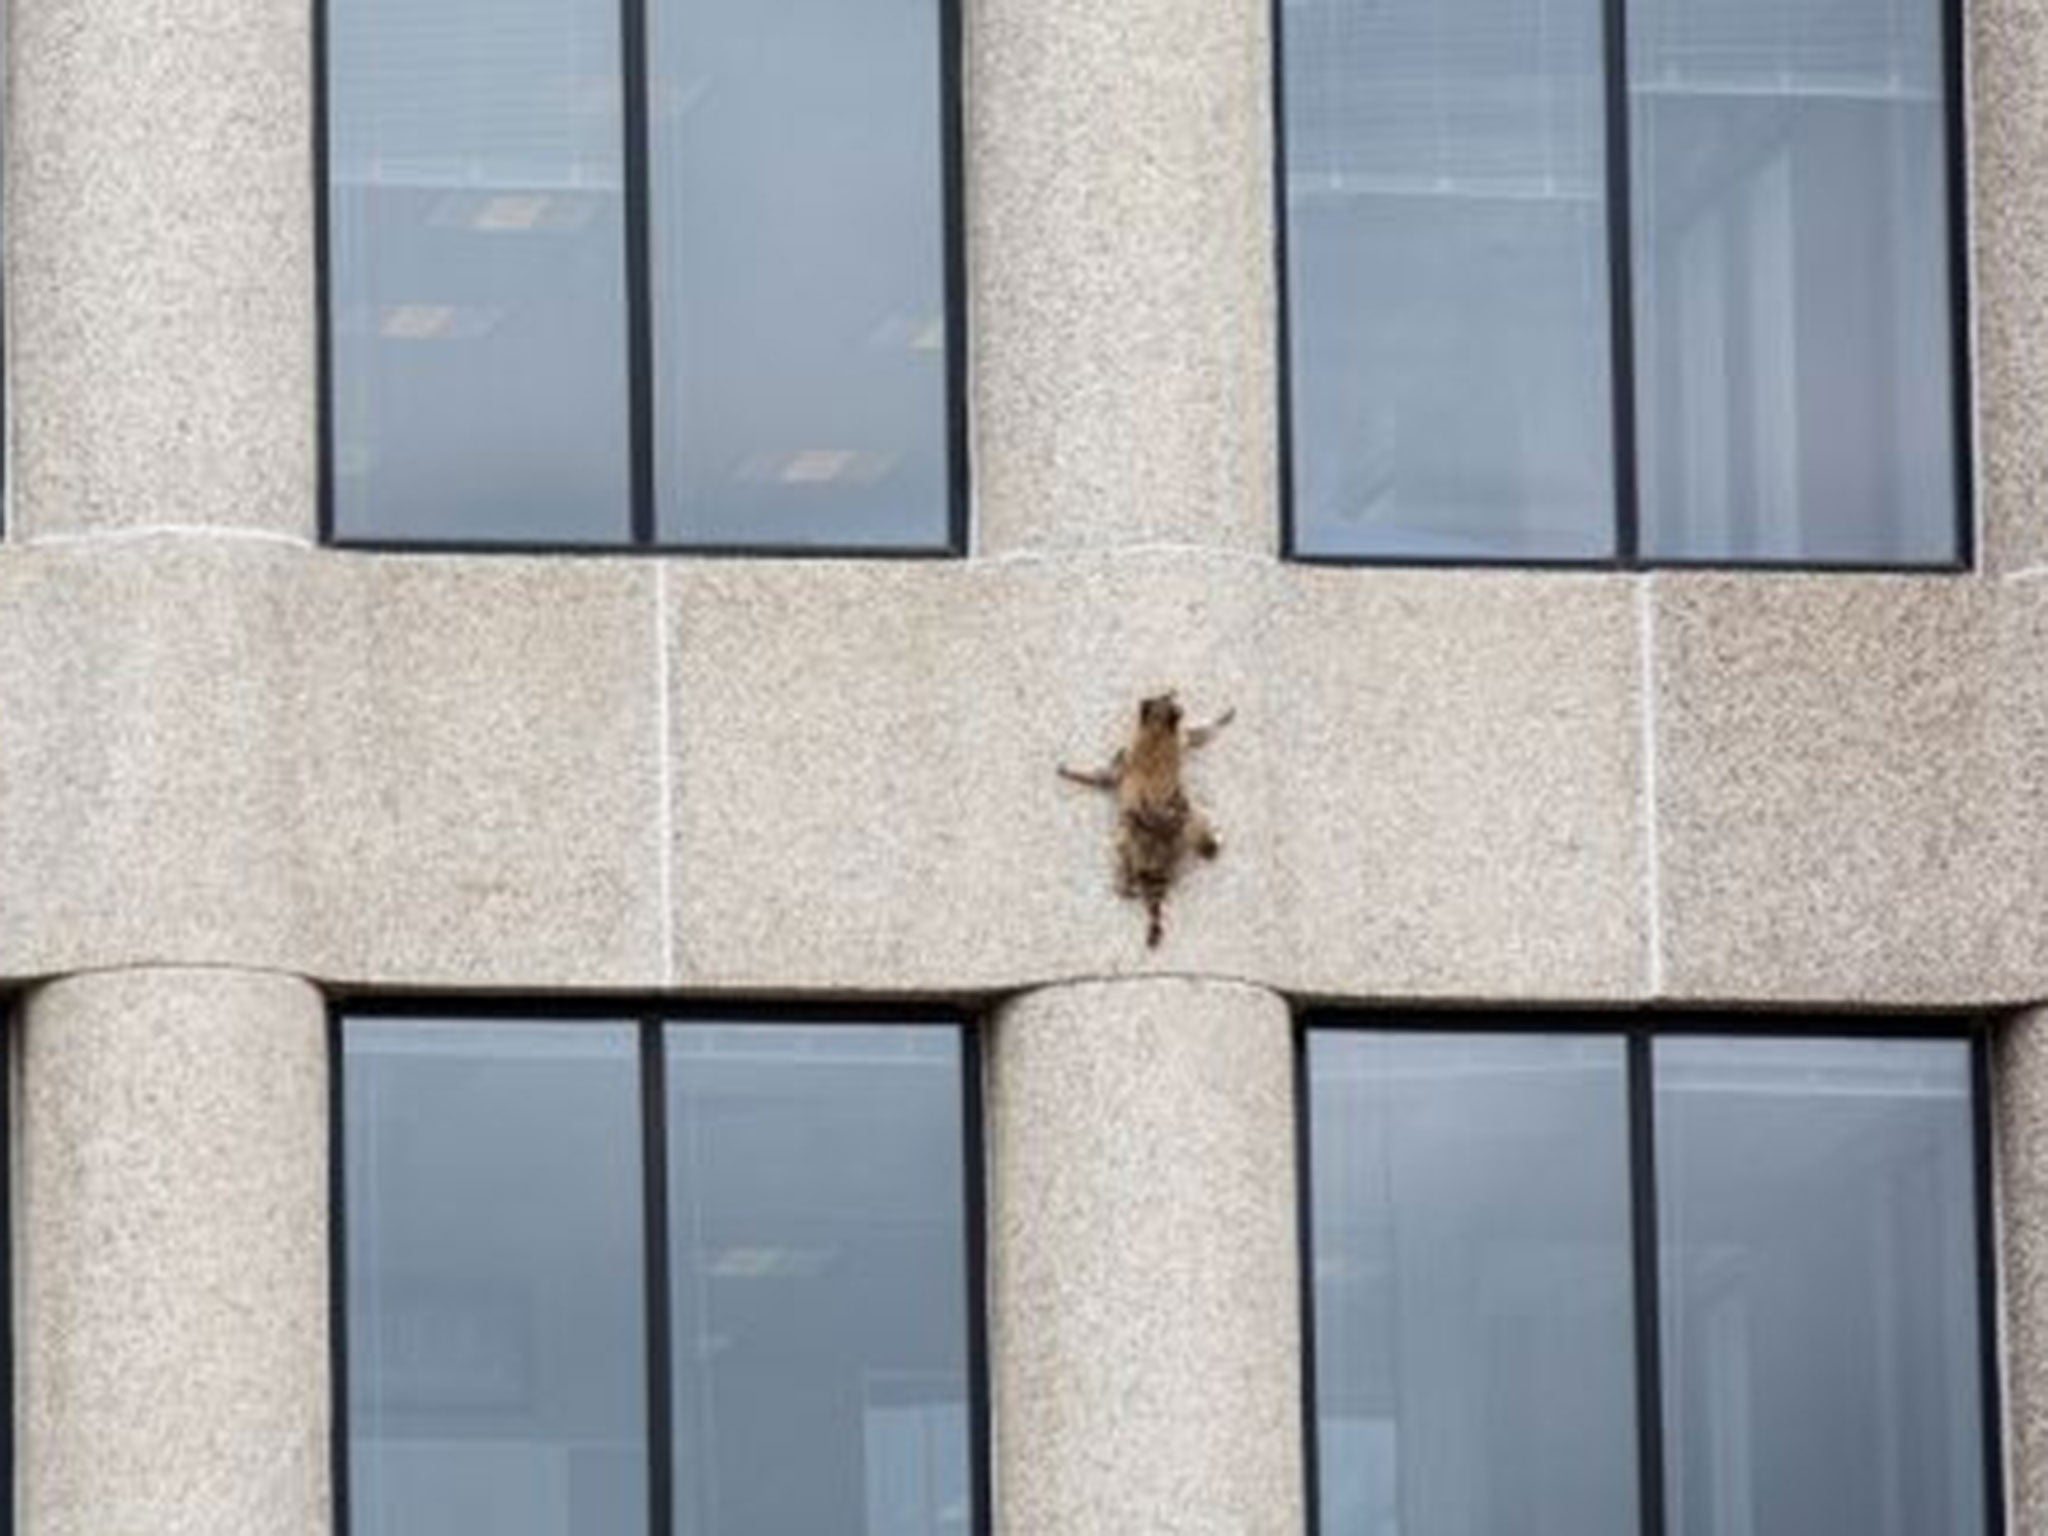 racoon that became international celebrity after scaling skyscraper